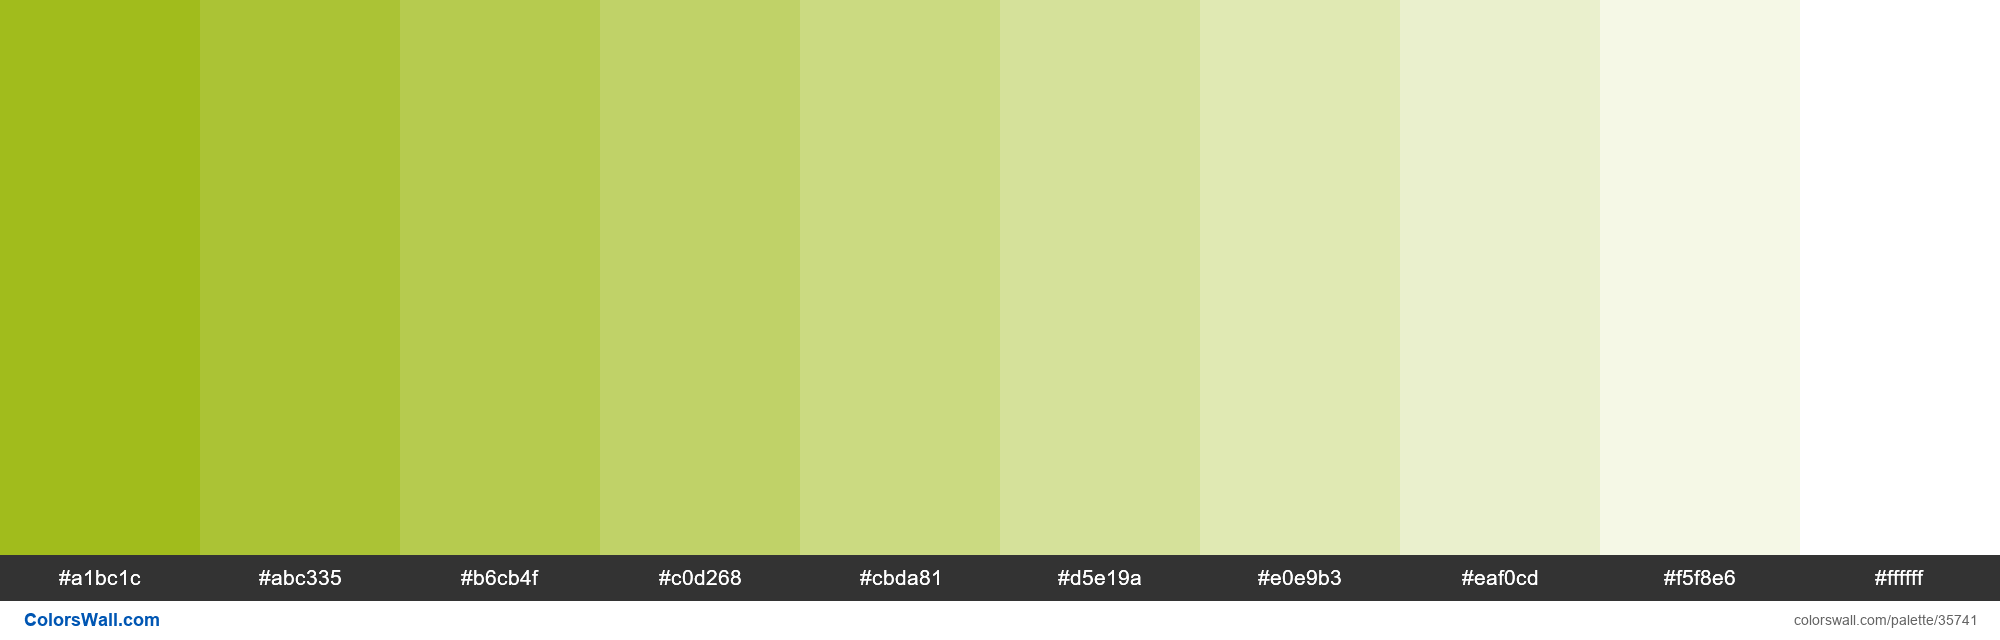 Tints XKCD Color booger green #96b403 hex - #35741